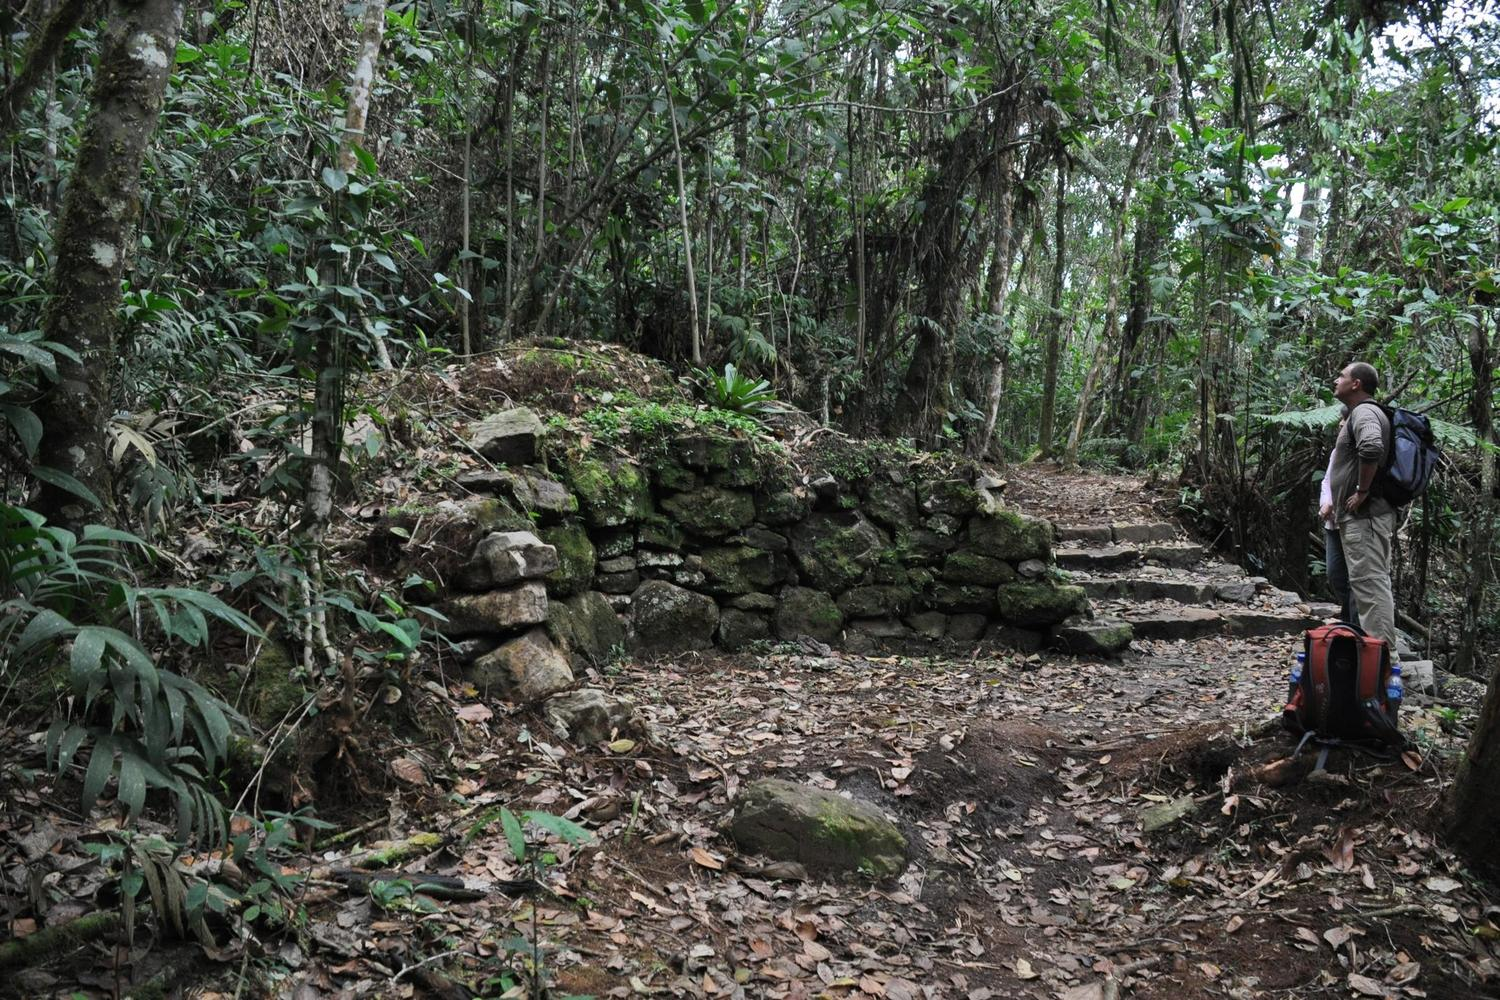 Archaeological remains still being uncovered in Kuielap